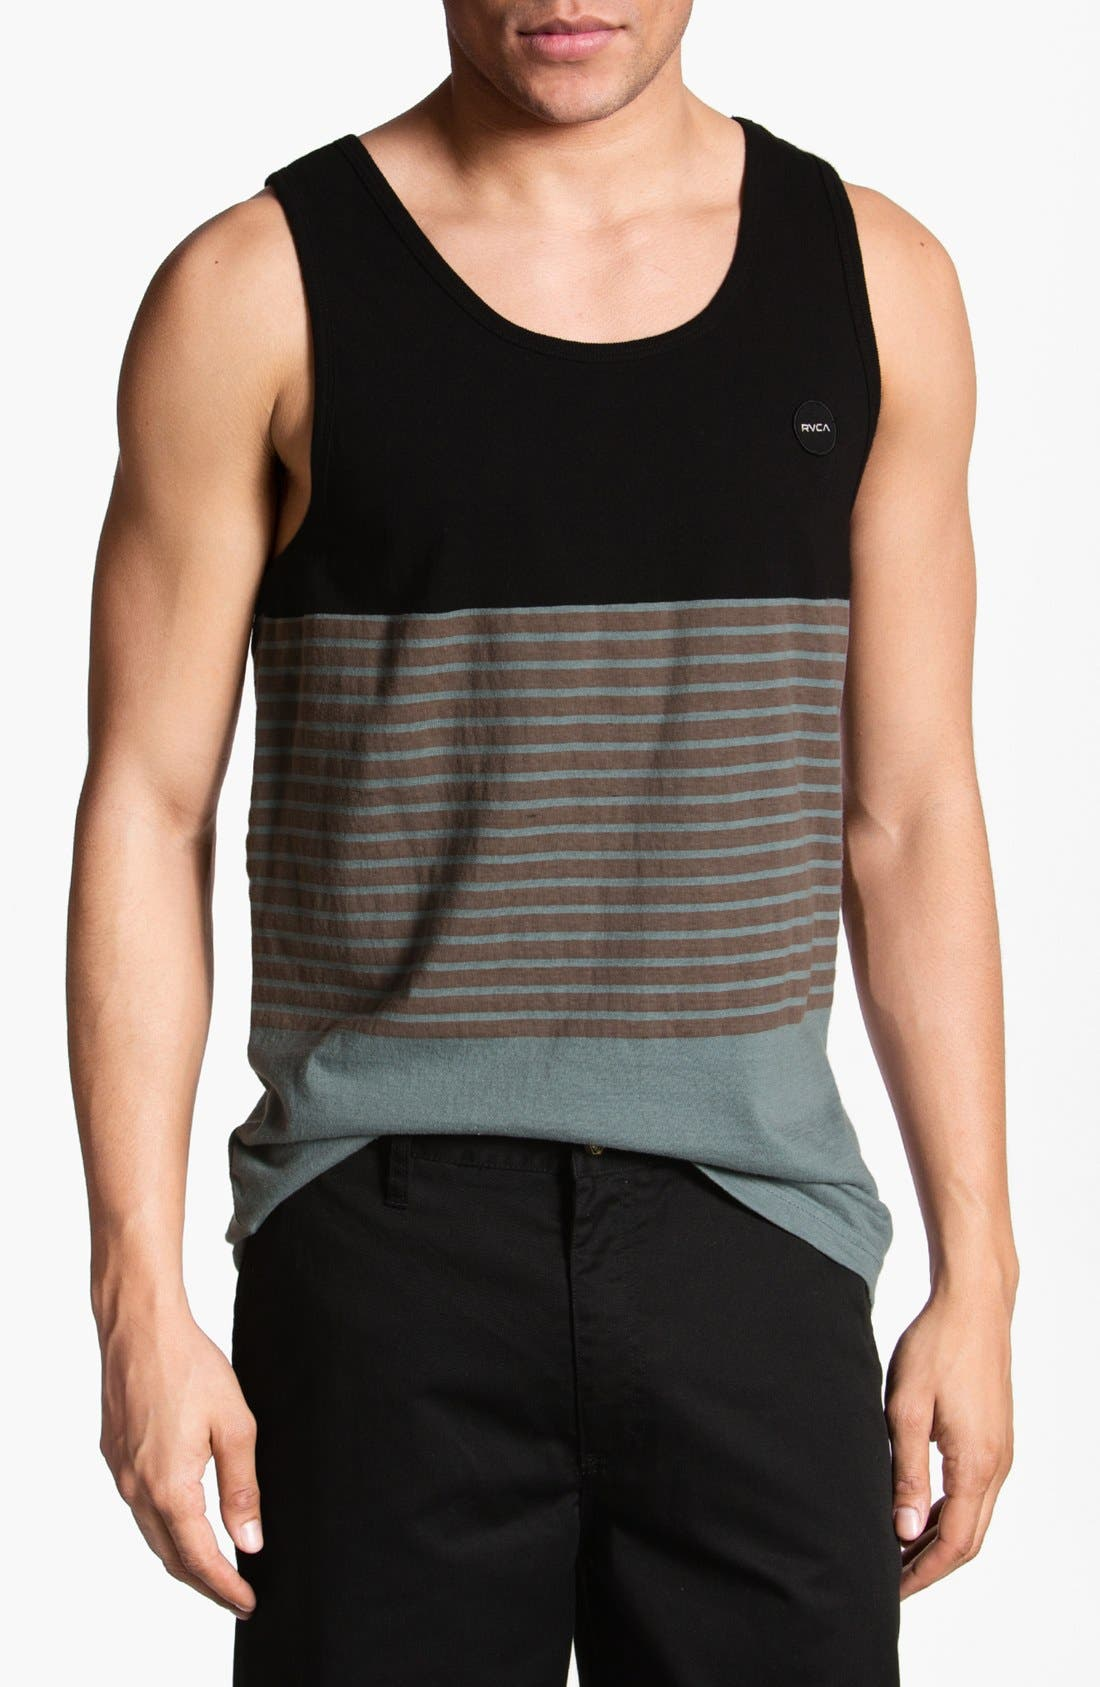 Alternate Image 1 Selected - RVCA 'Layer' Tank Top